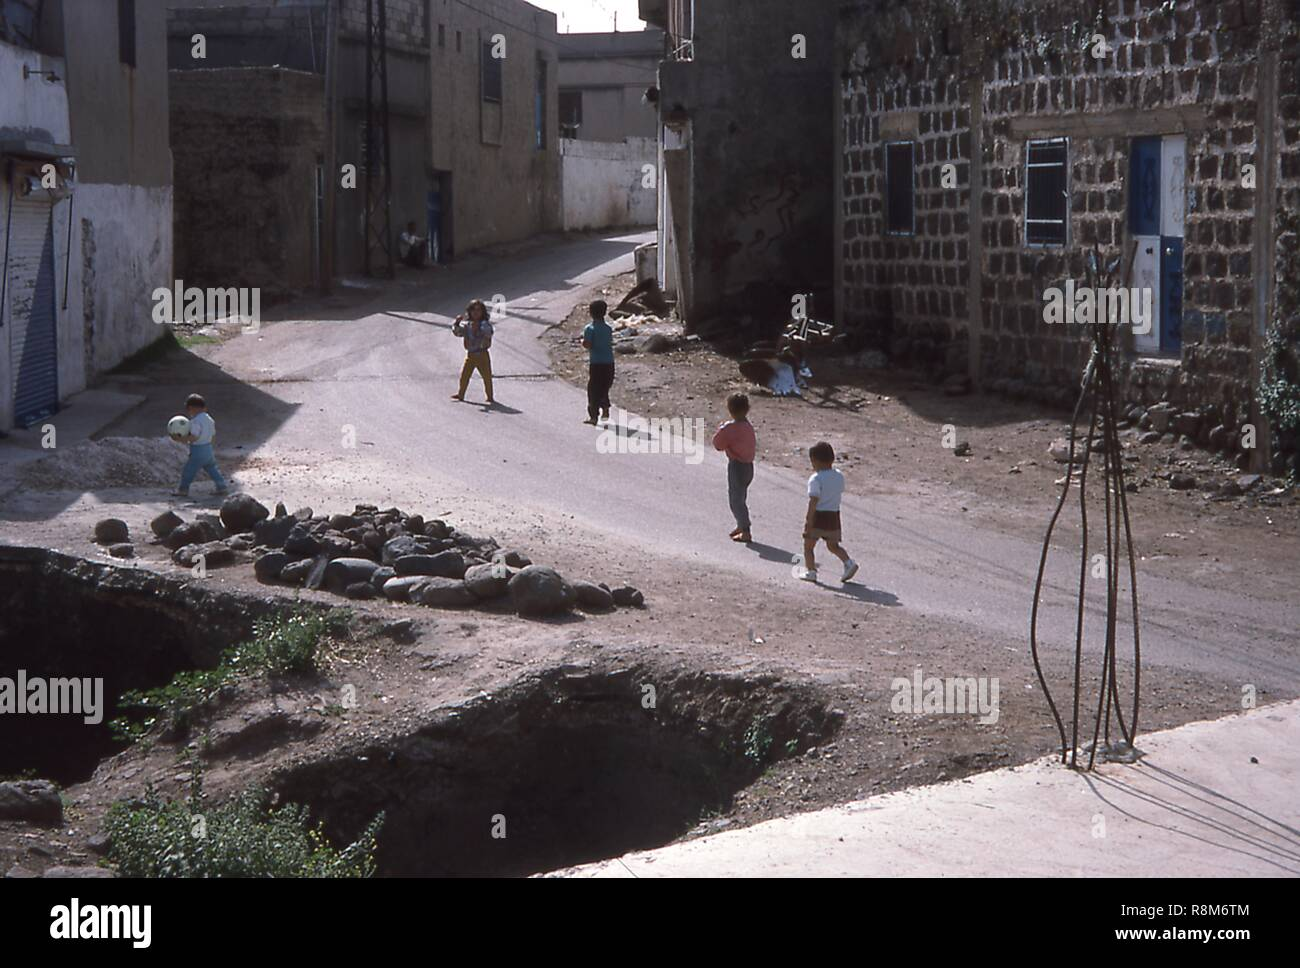 Scene of children playing football (soccer) on a dusty street in Qalaat al-Madiq, Syria, June, 1994. () - Stock Image